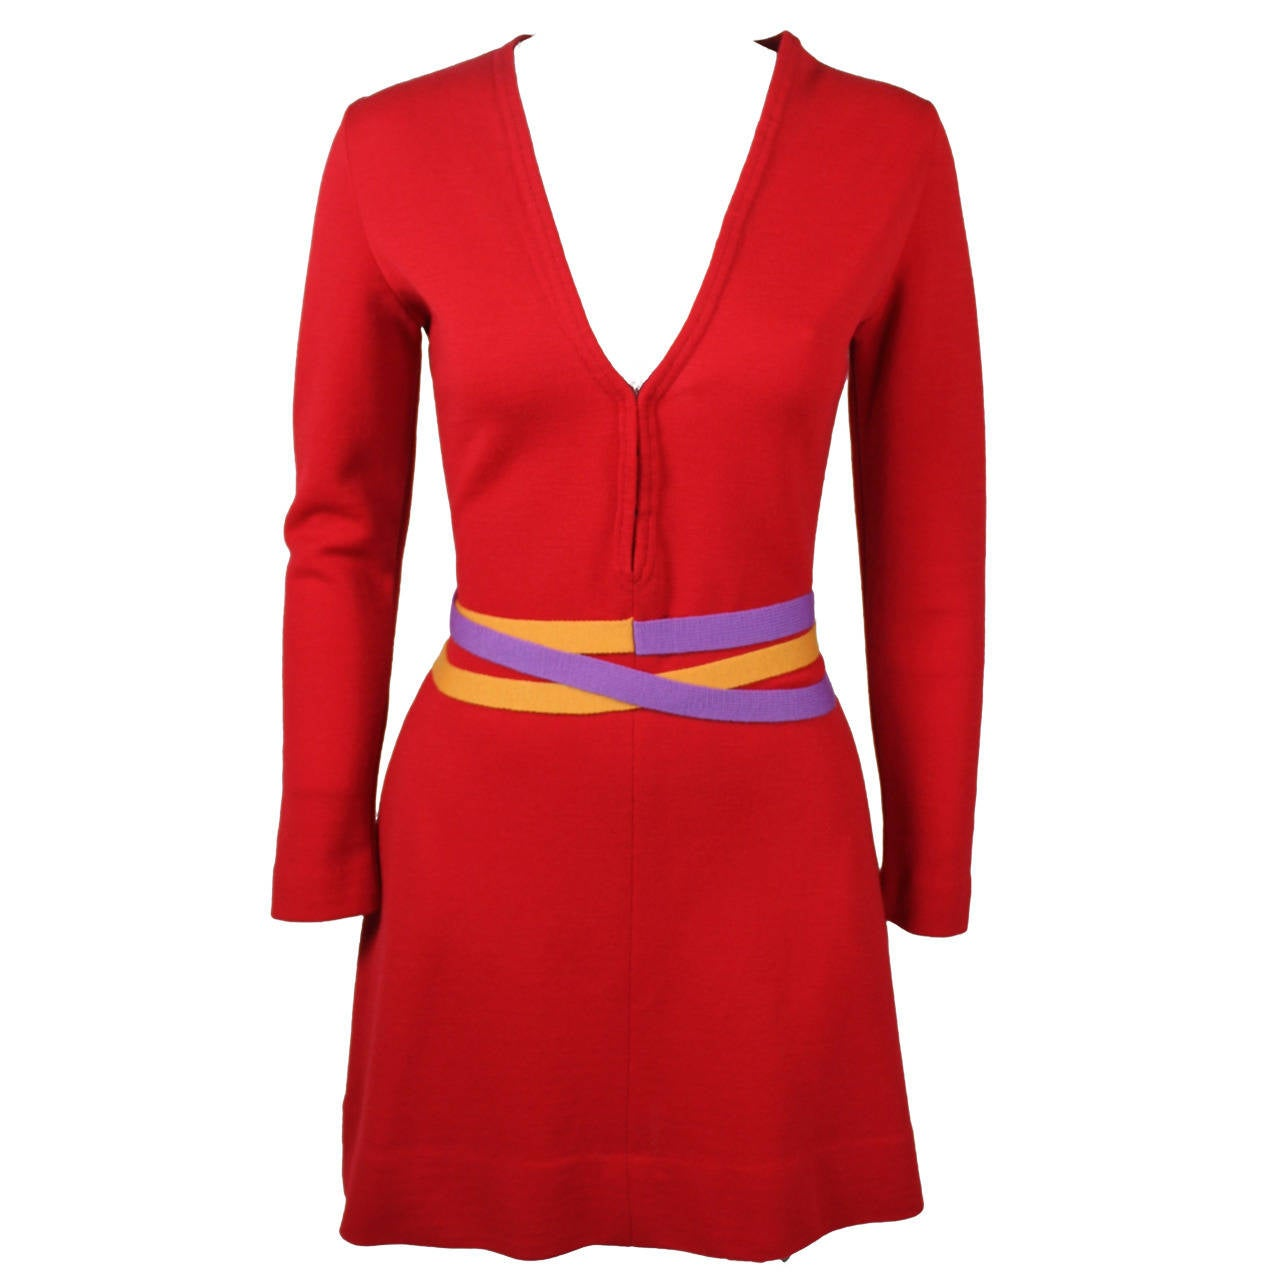 Rudi Gernreich 1960s Vibrant Red Wool Mini Dress with Purple and Yellow Belt 1